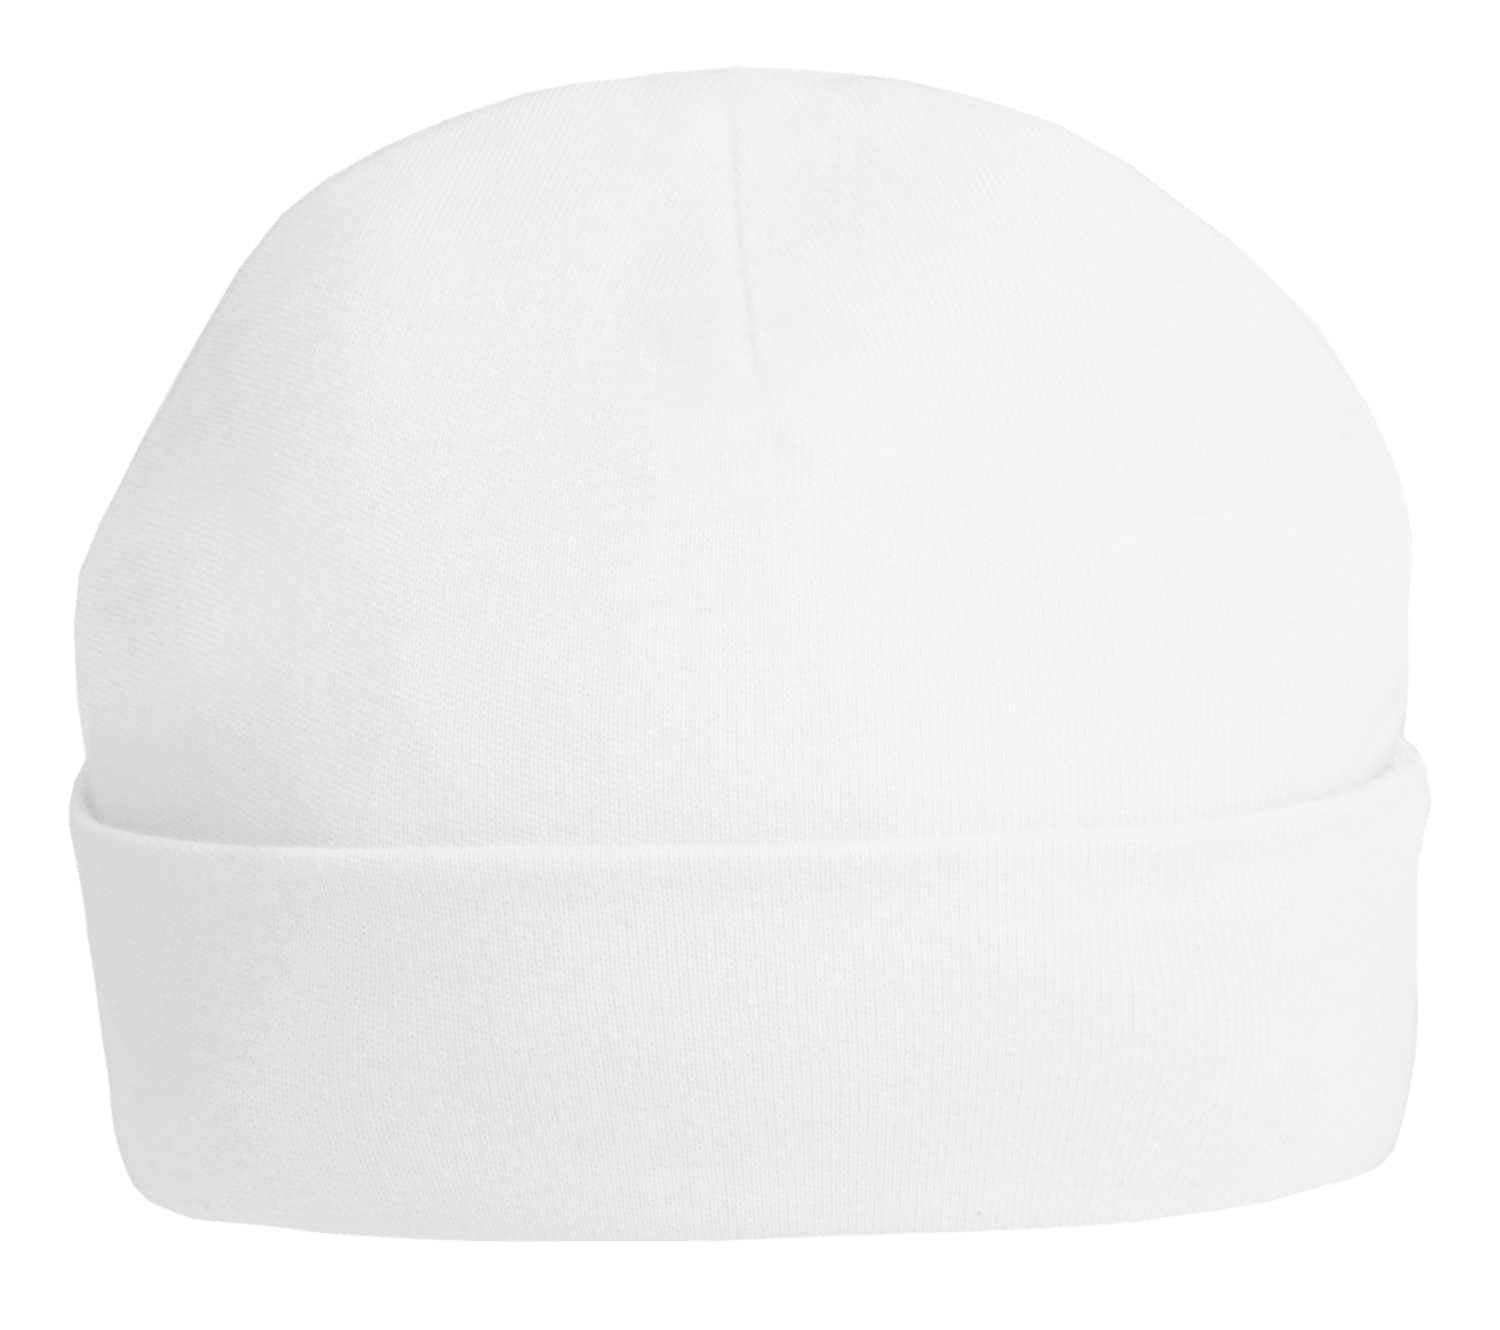 New 100% cotton White Baby Hat by Soft Touch - unisex baby available in newborn and 0-3 months